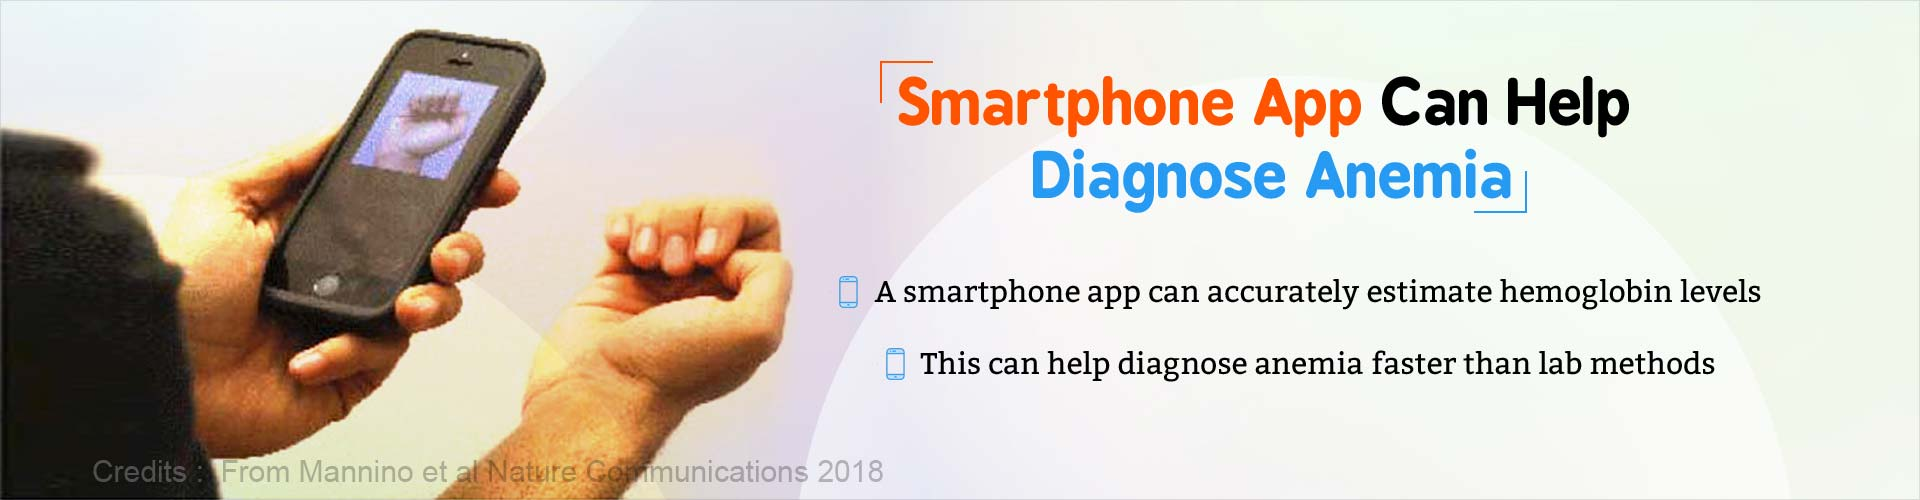 Smartphone app can help diagnose anemia. A smartphone app can accurately estimate hemoglobin levels. This can help diagnose anemia faster than lab methods.